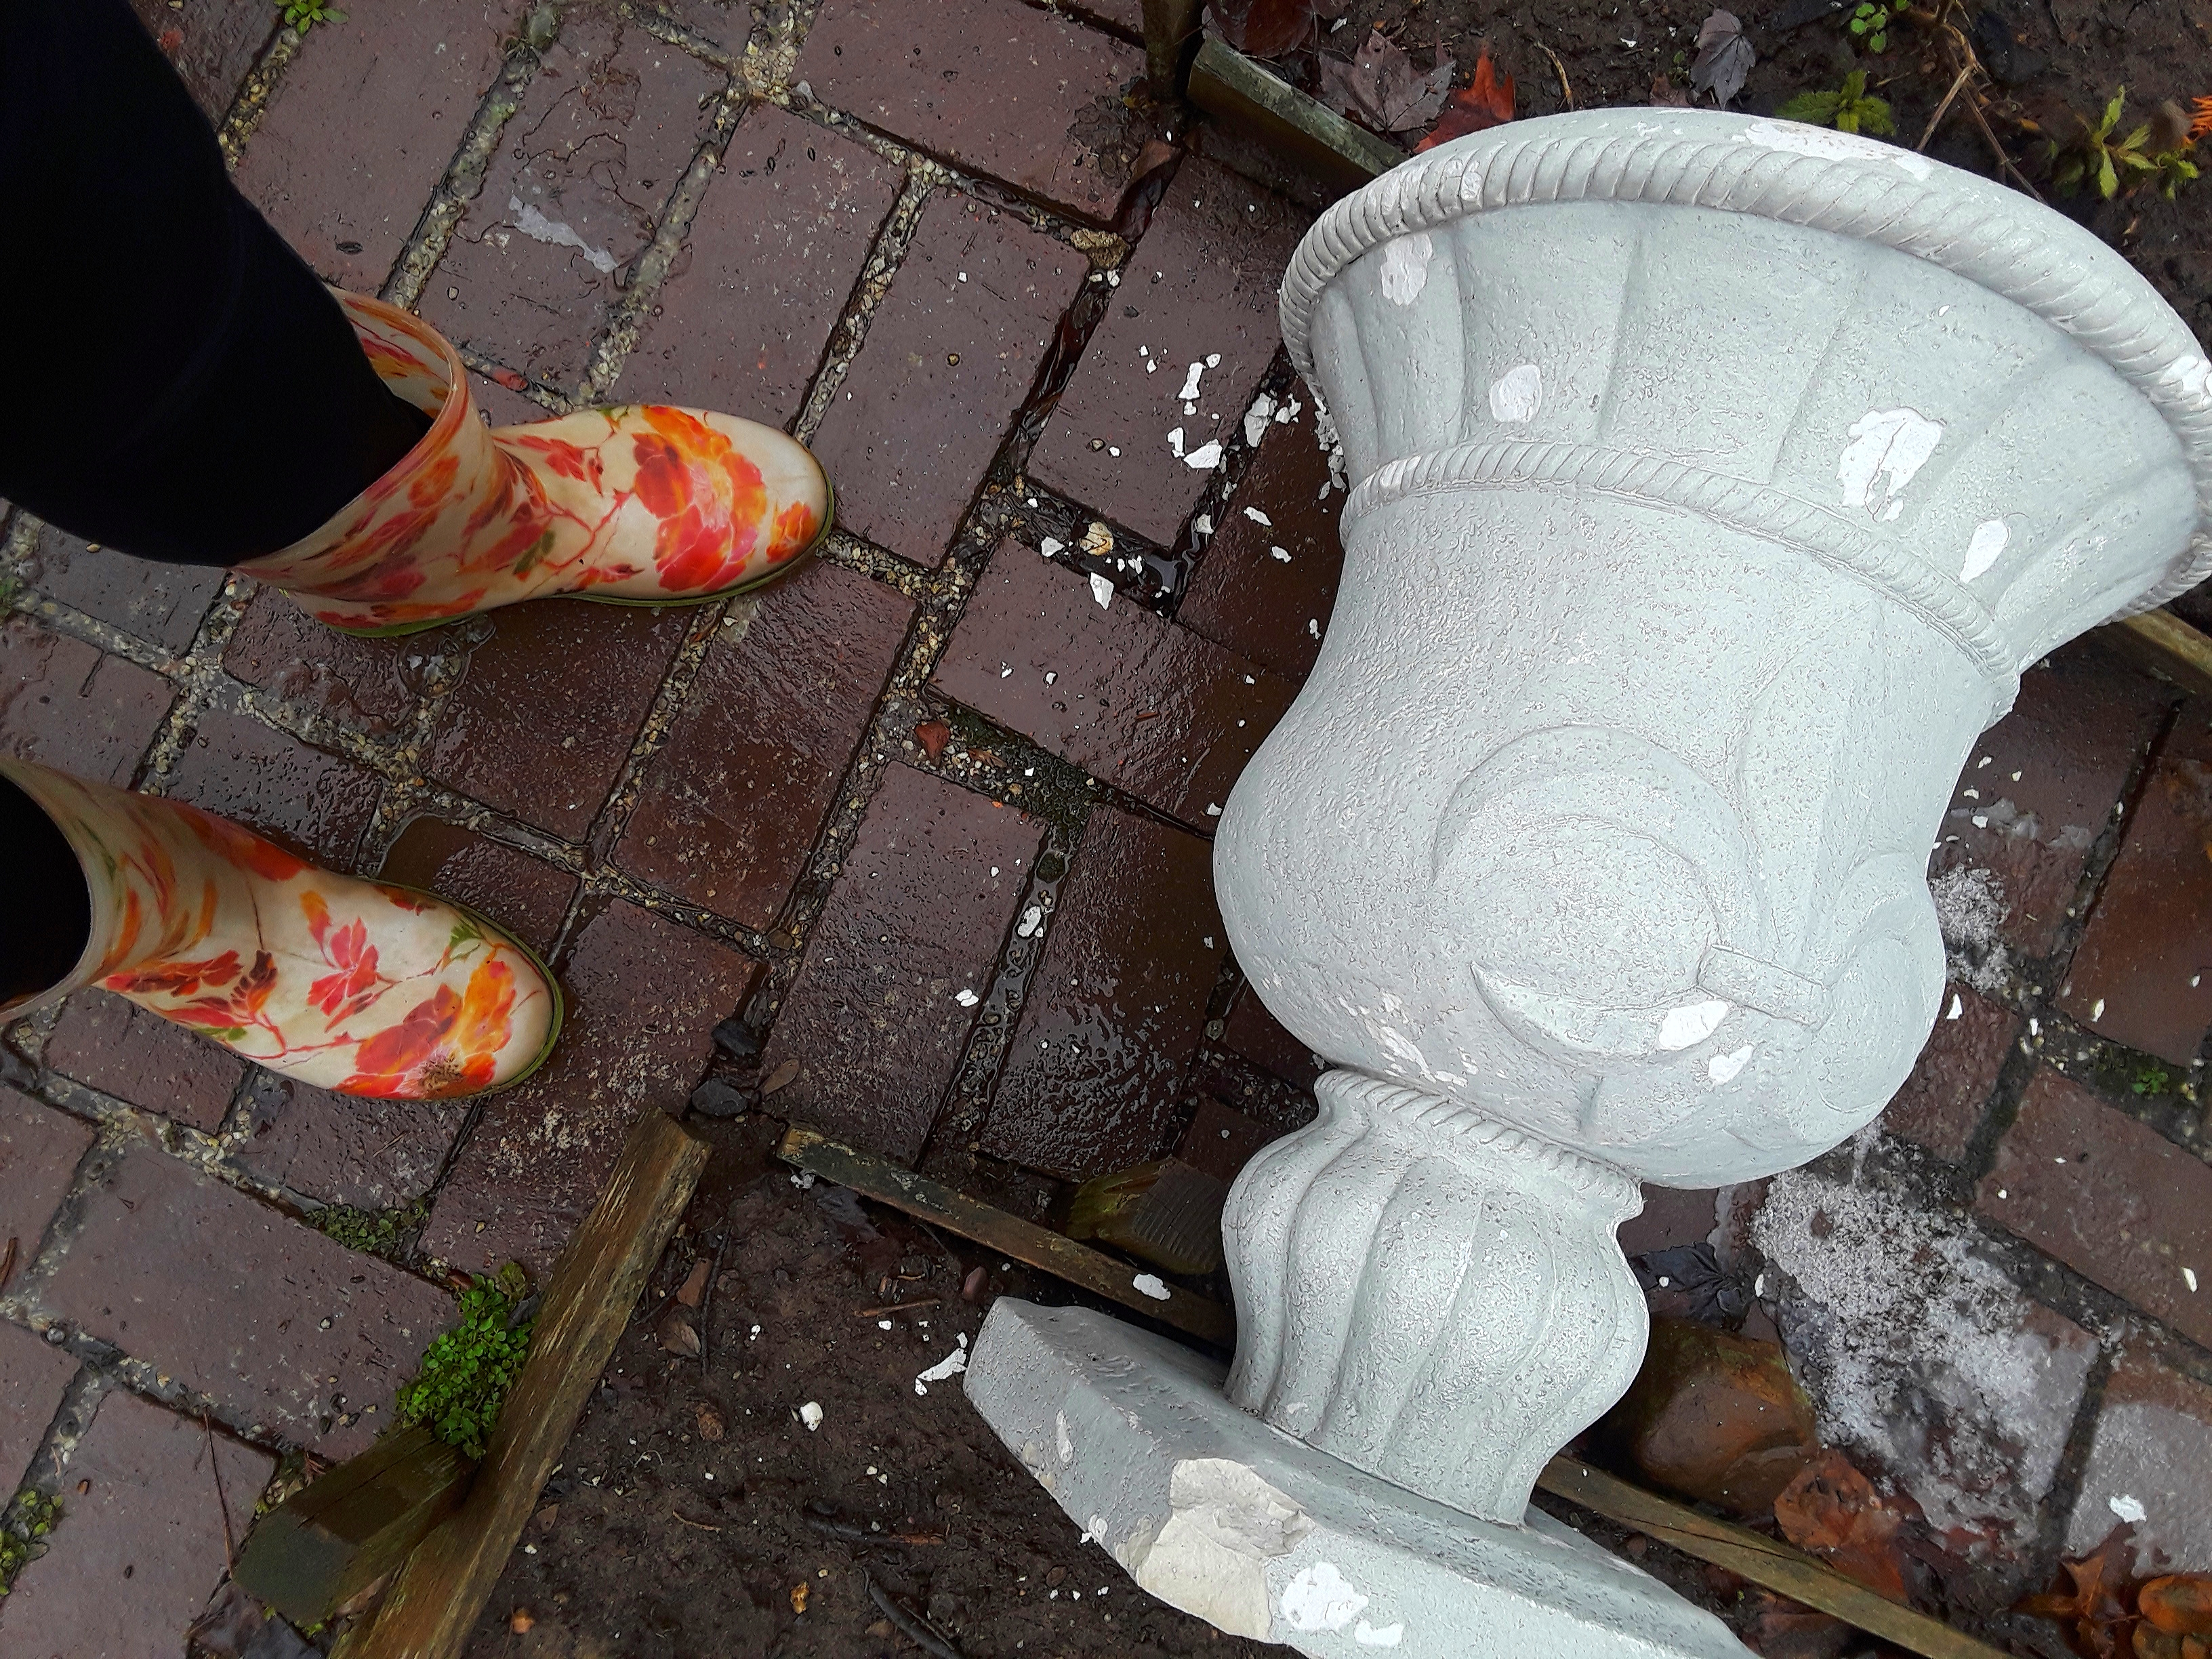 weathering of cement urns includes chipping